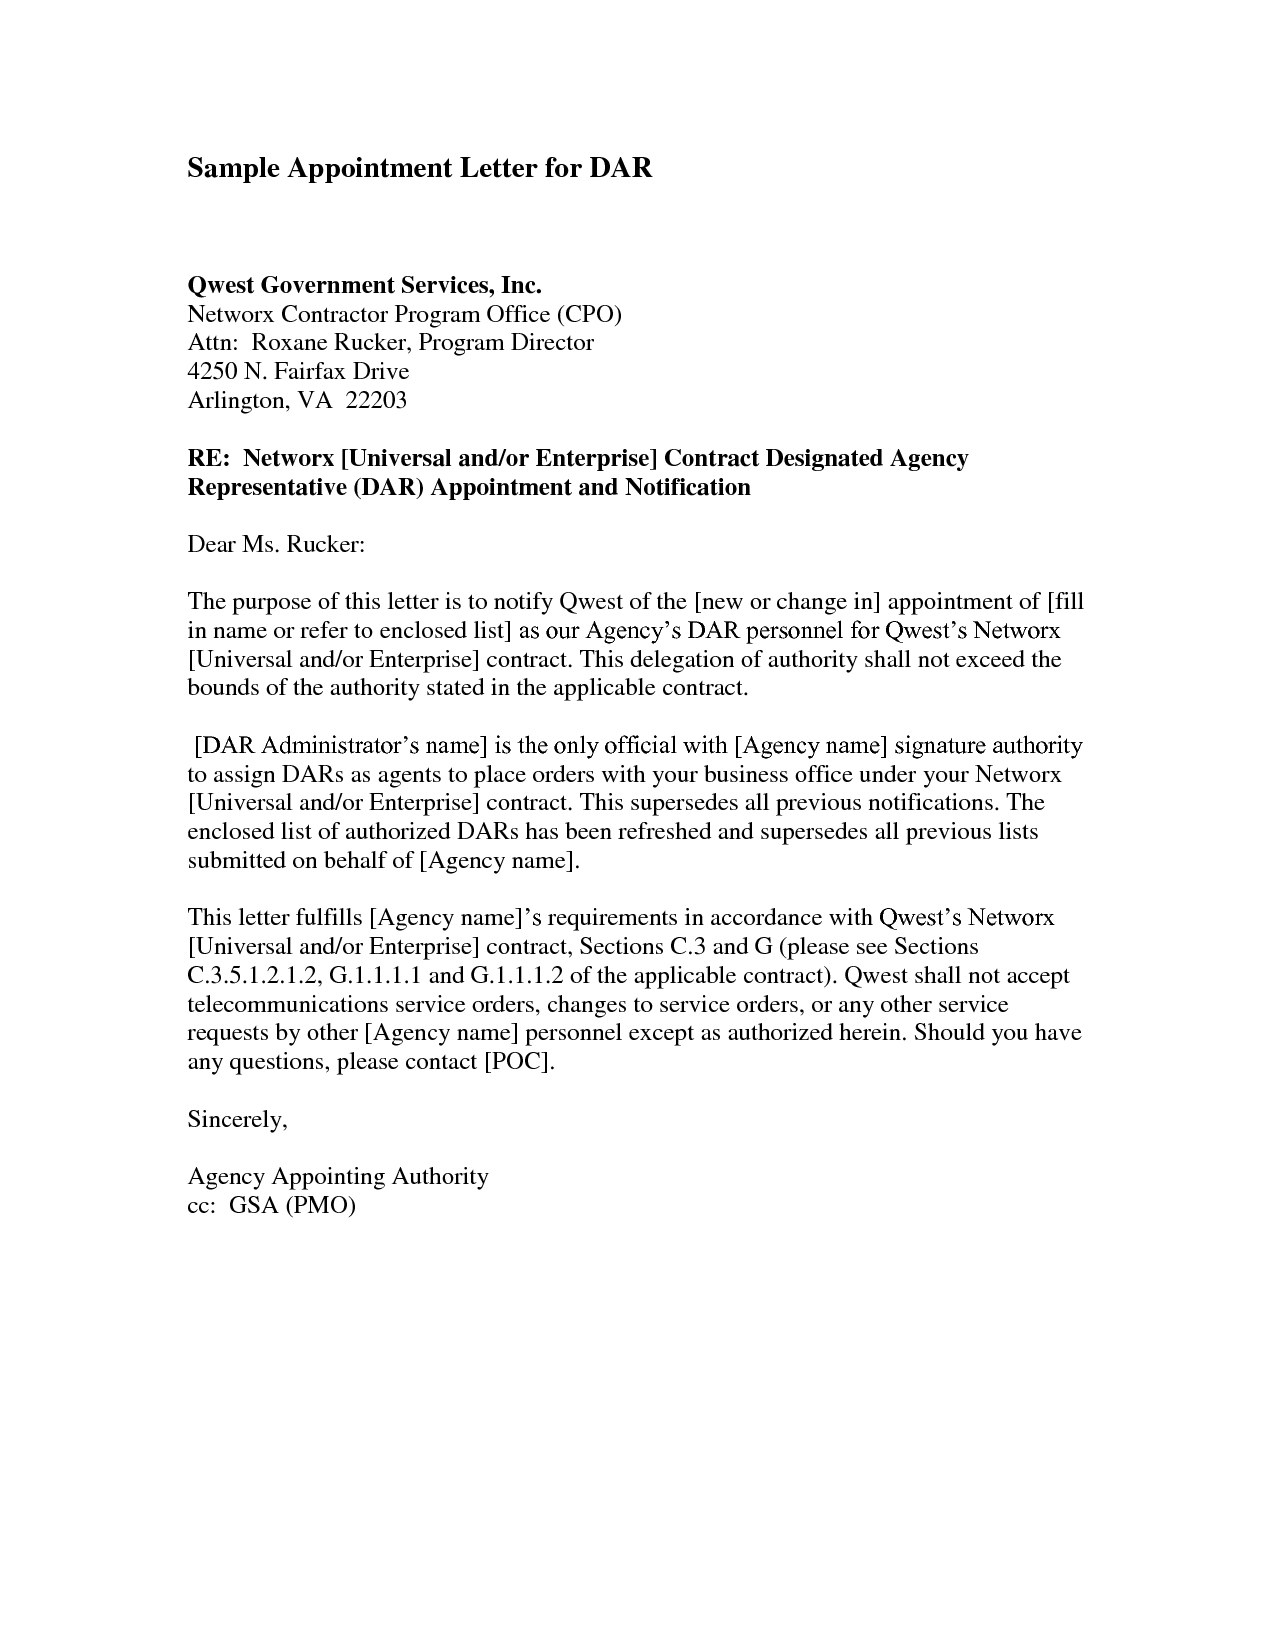 Donation Letter Template Pdf - Trustee Appointment Letter Director Trustee is Appointed or